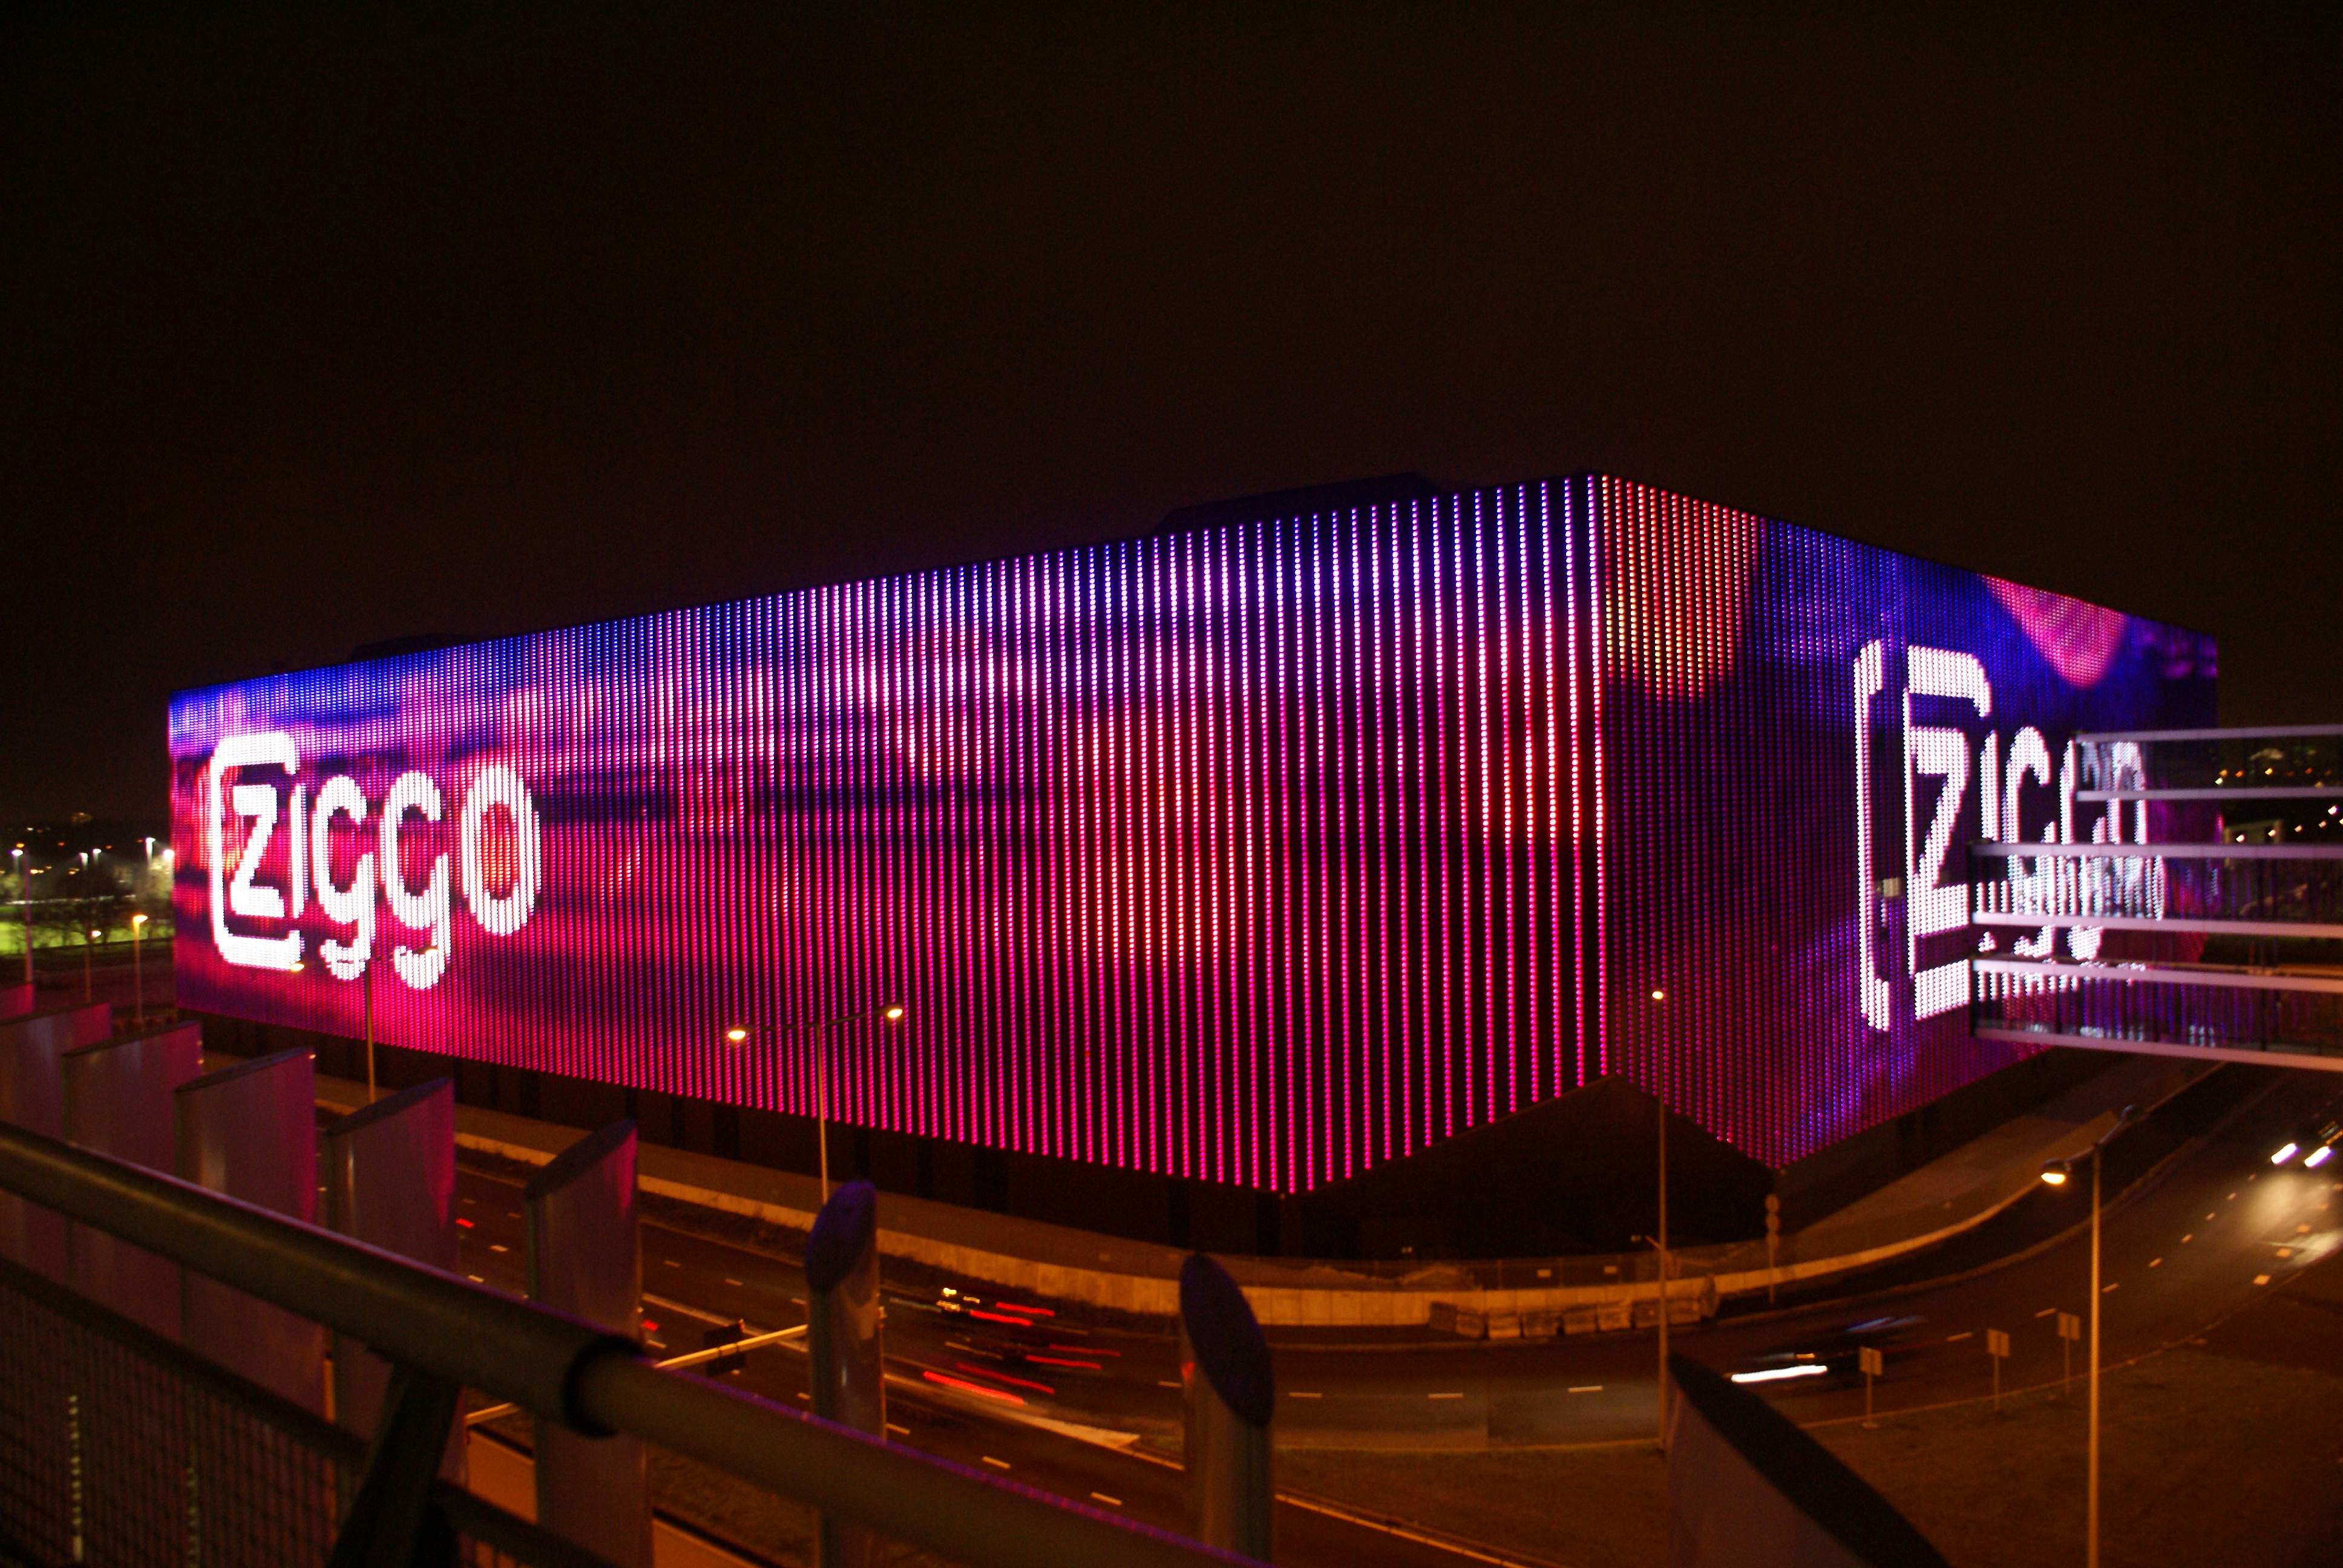 File:Ziggo Dome.JPG - Wikipedia, the free encyclopedia